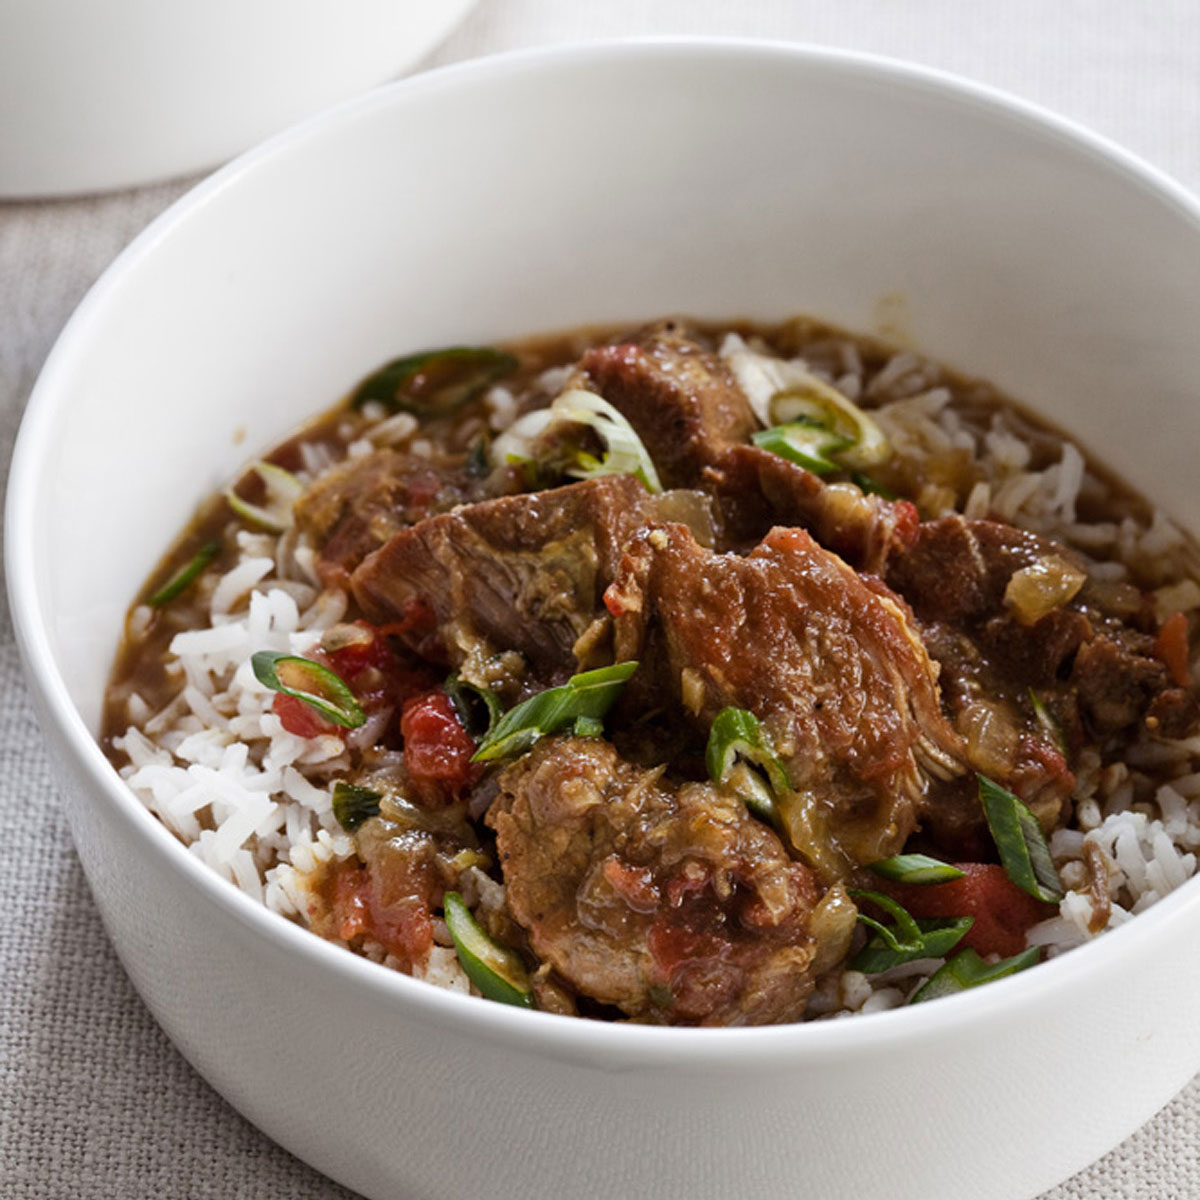 Diced pork slow cooker recipes uk